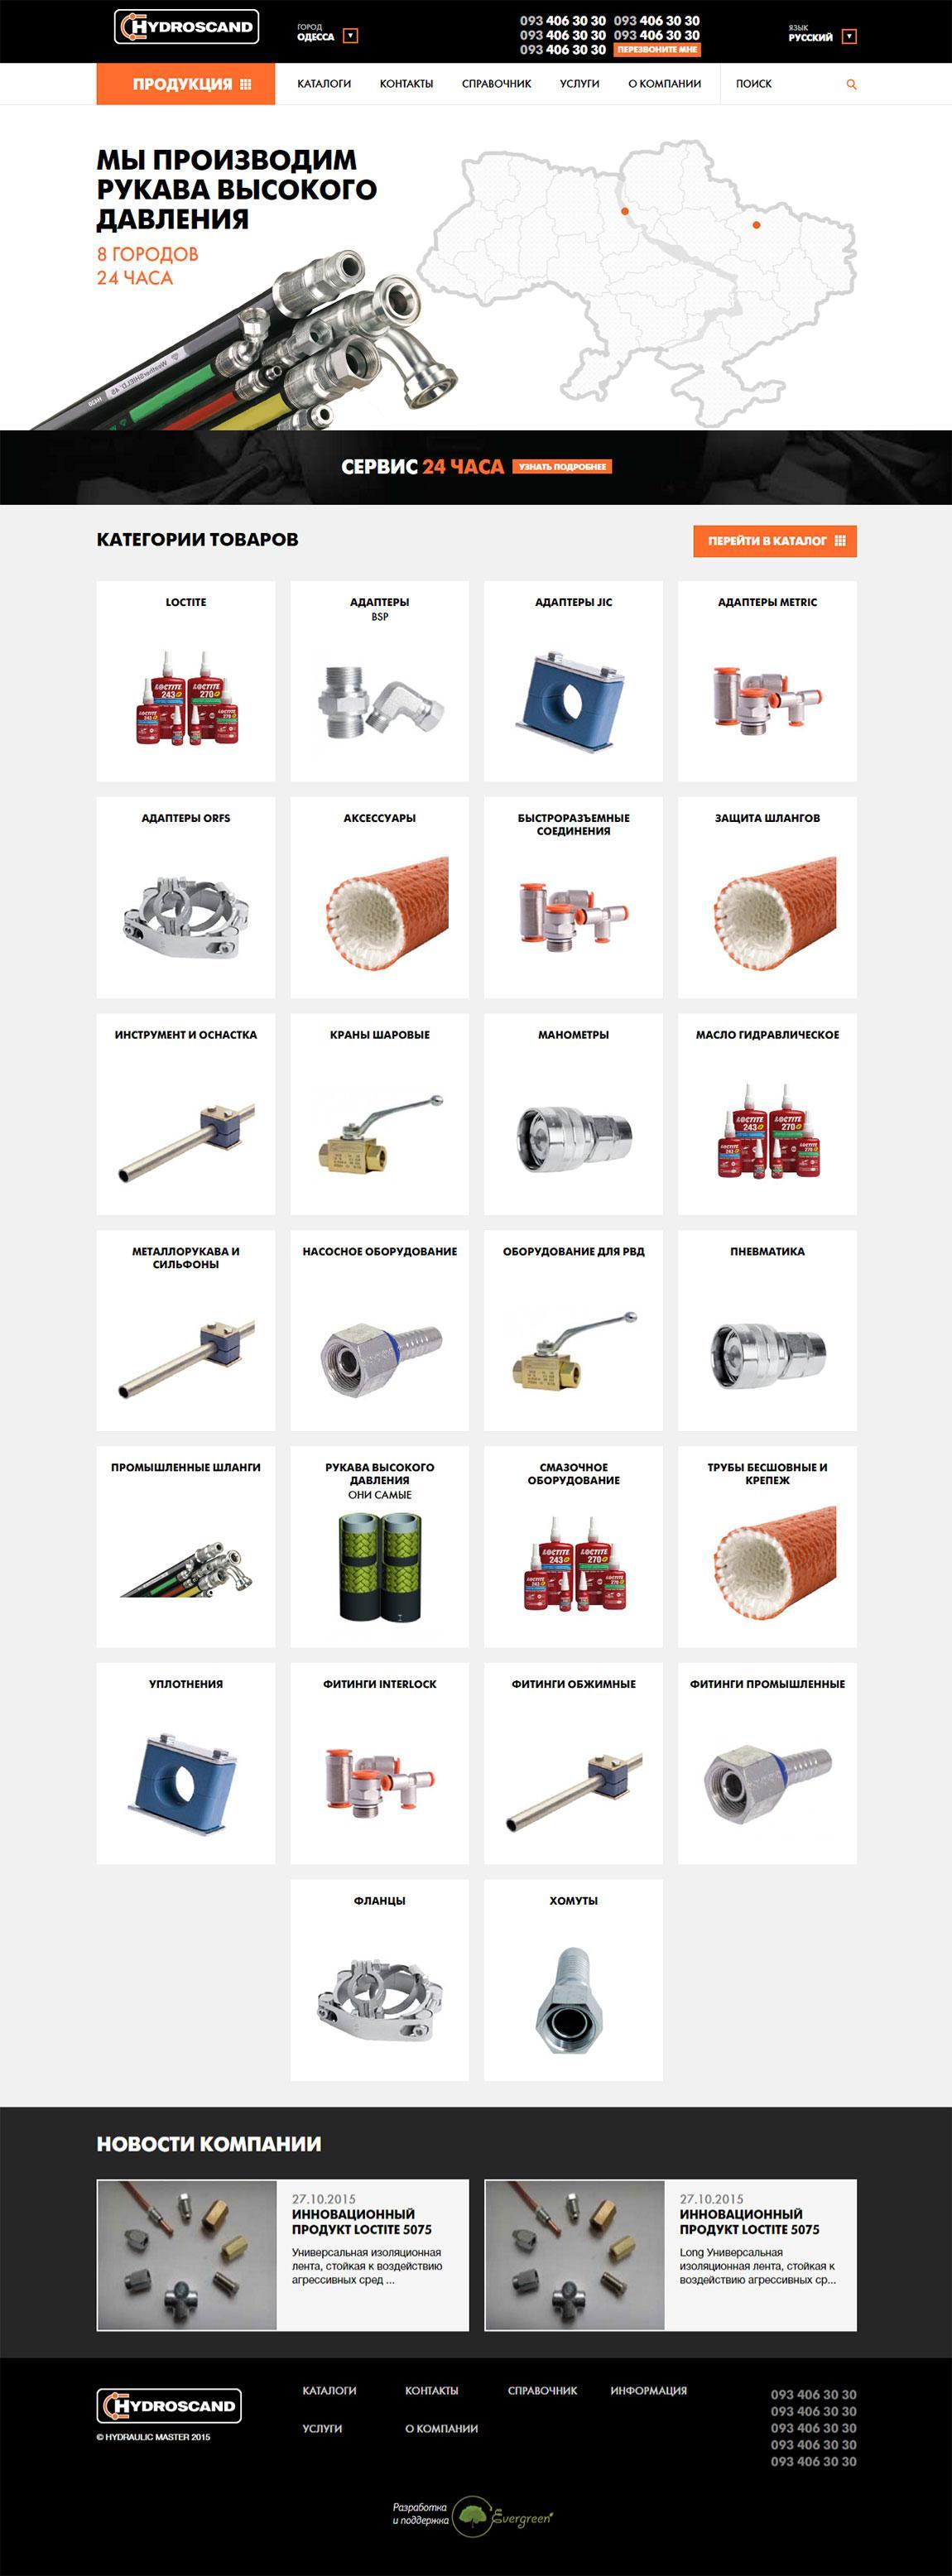 online-catalogue for hydraulic parts, hoses, and other parts for machines and engines | Evergreen projects 6